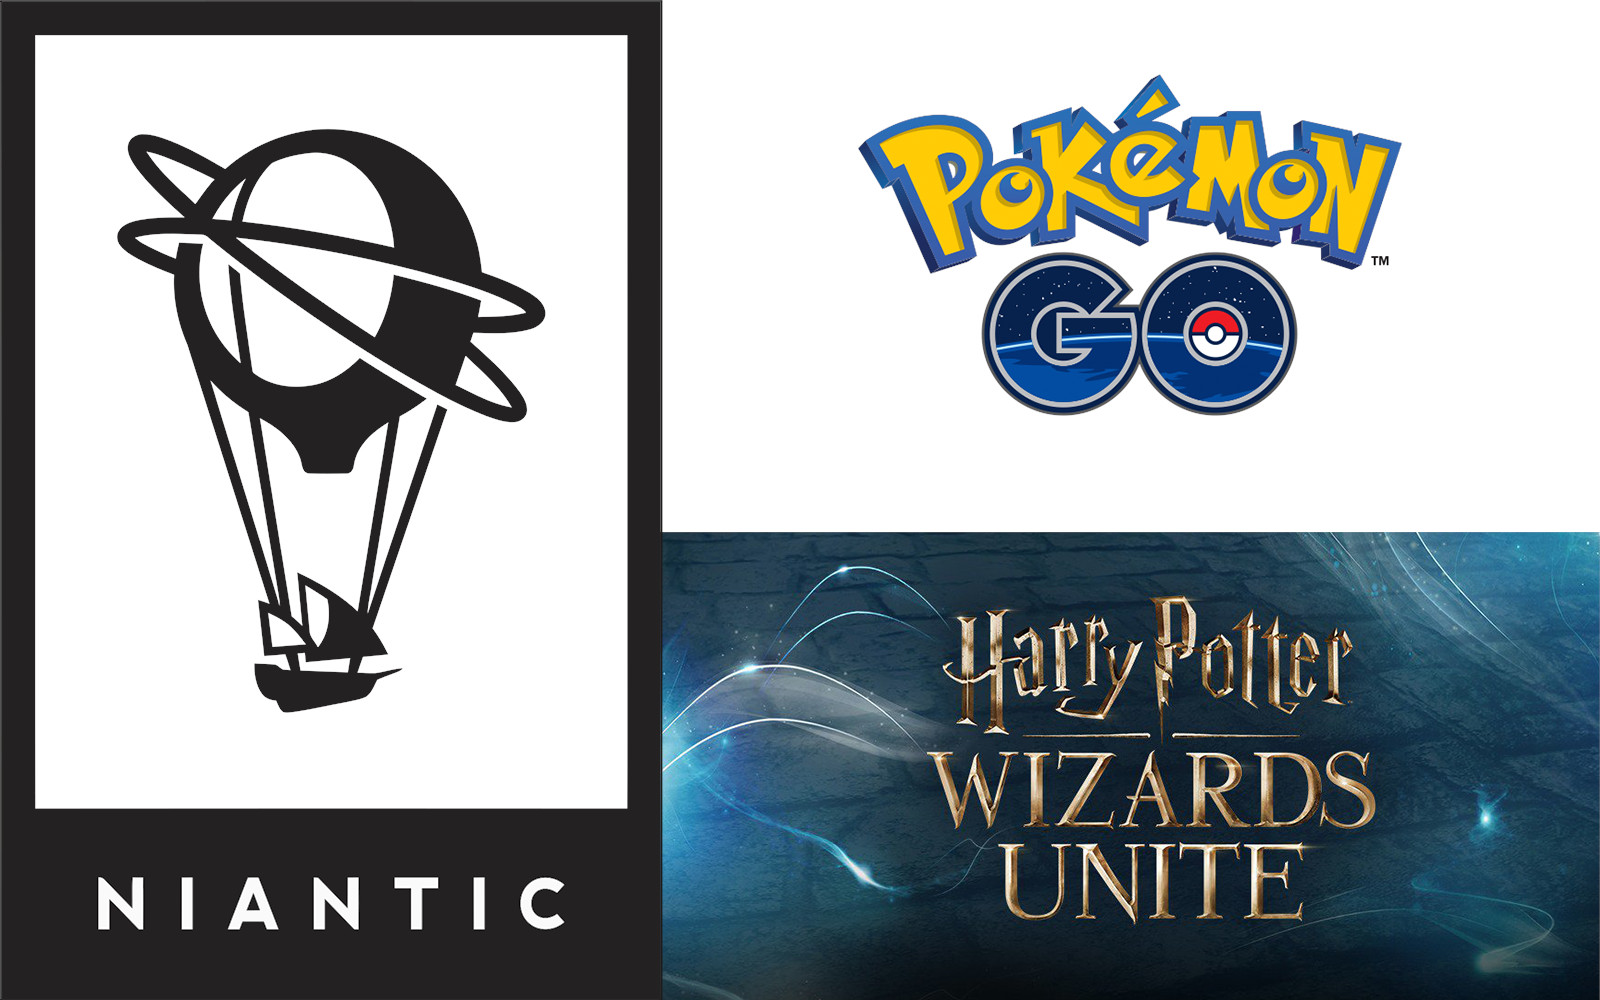 Pokemon Go Creators Niantic Raises $200 Million Ahead Of Harry Potter AR Game